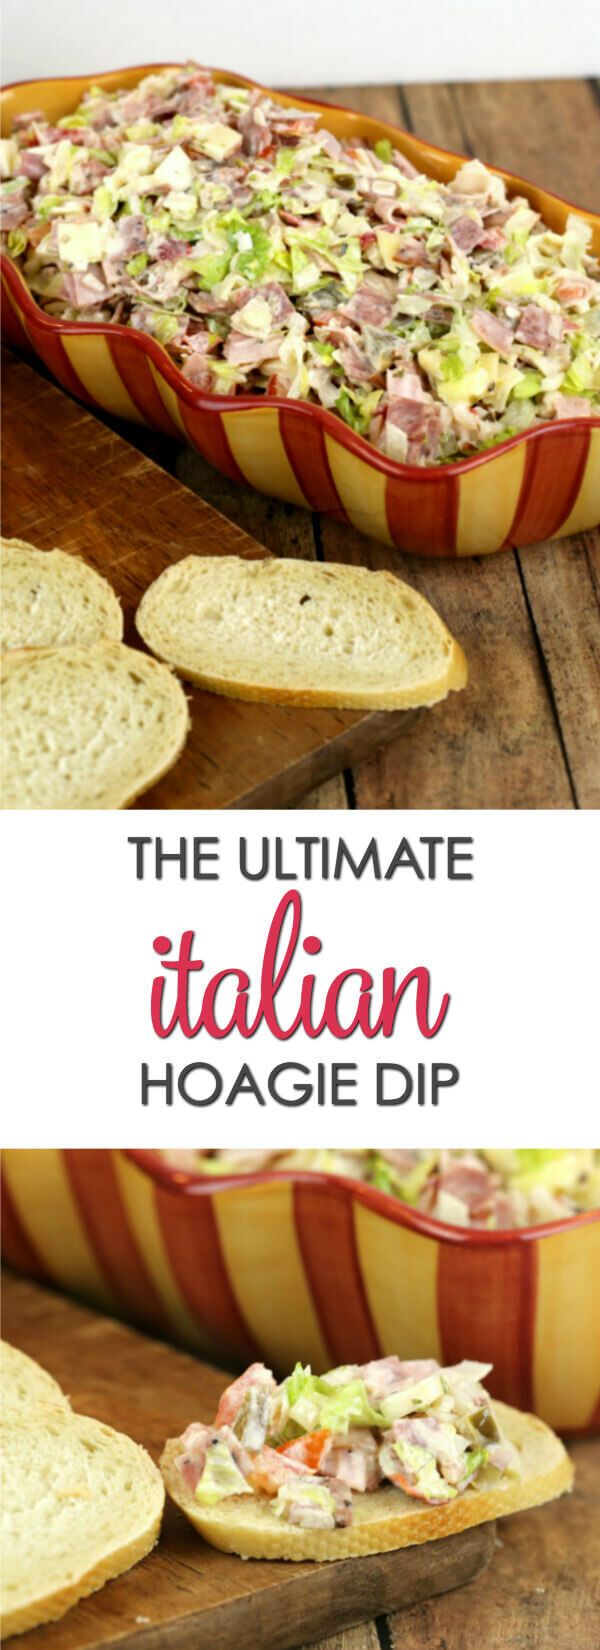 This easy Italian Hoagie Dip recipe is one of my family's all-time favorite recipes. It has everything that an Italian Hoagie has on it but it's chopped up and served as a dip. Every time I make it, it gets devoured! via @itsakeeperblog